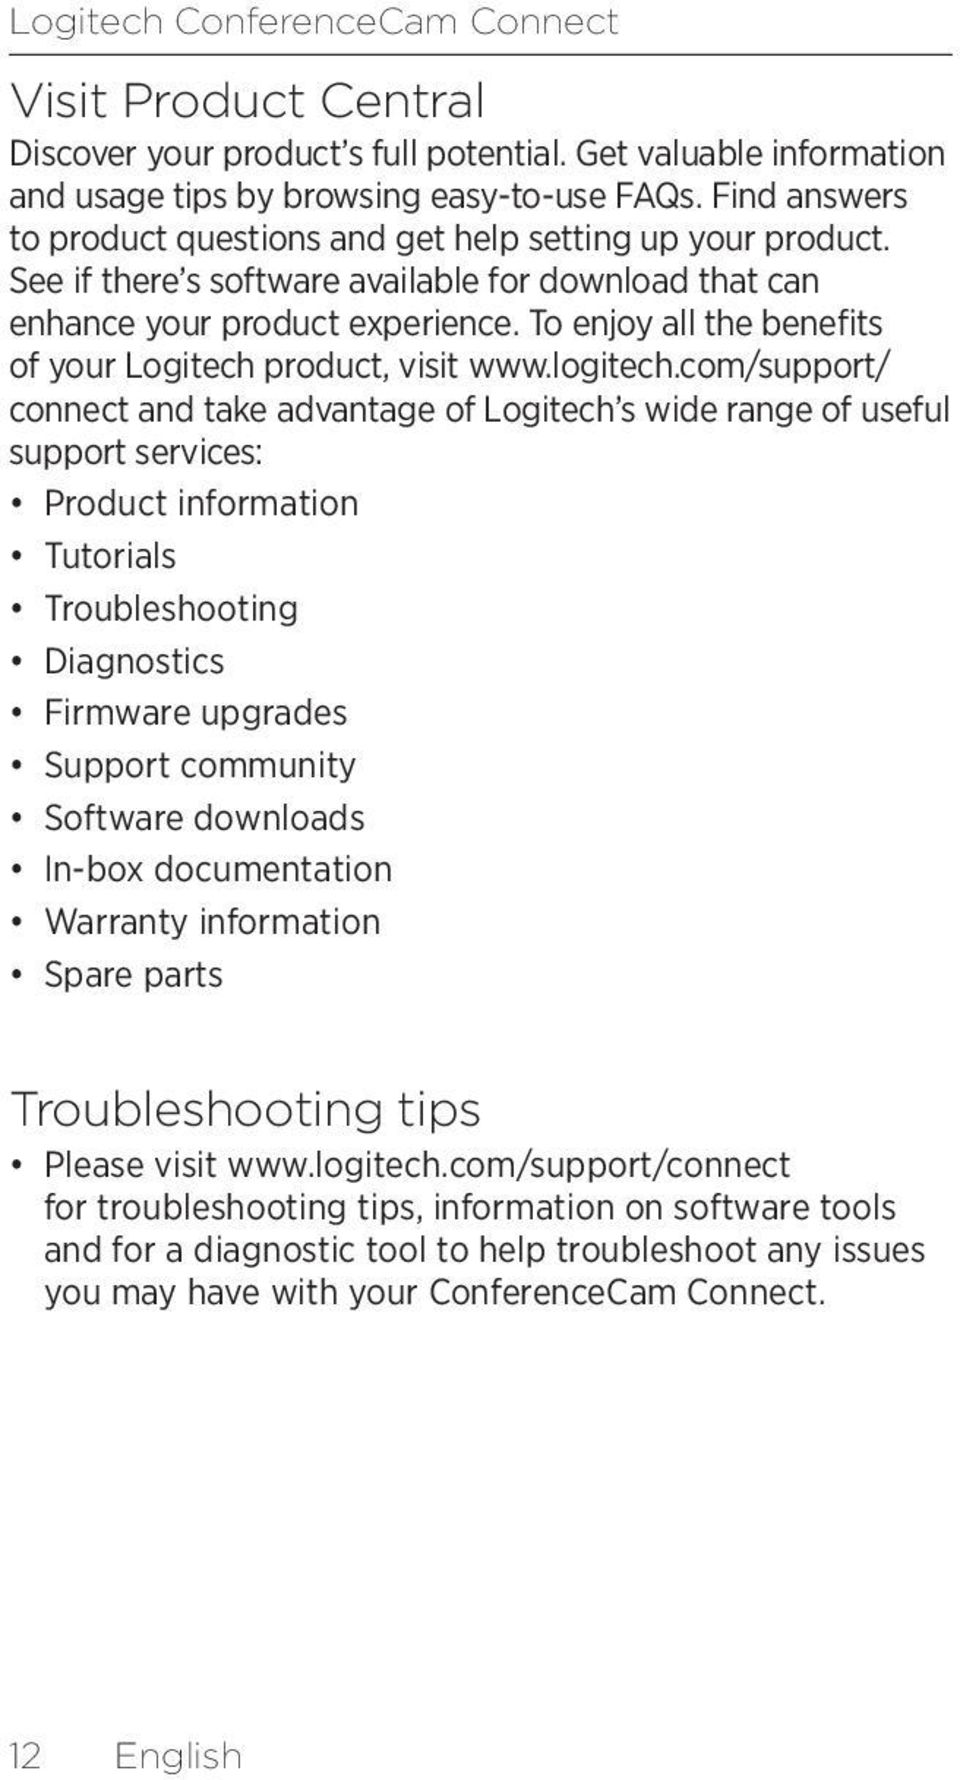 To enjoy all the benefits of your Logitech product, visit www.logitech.